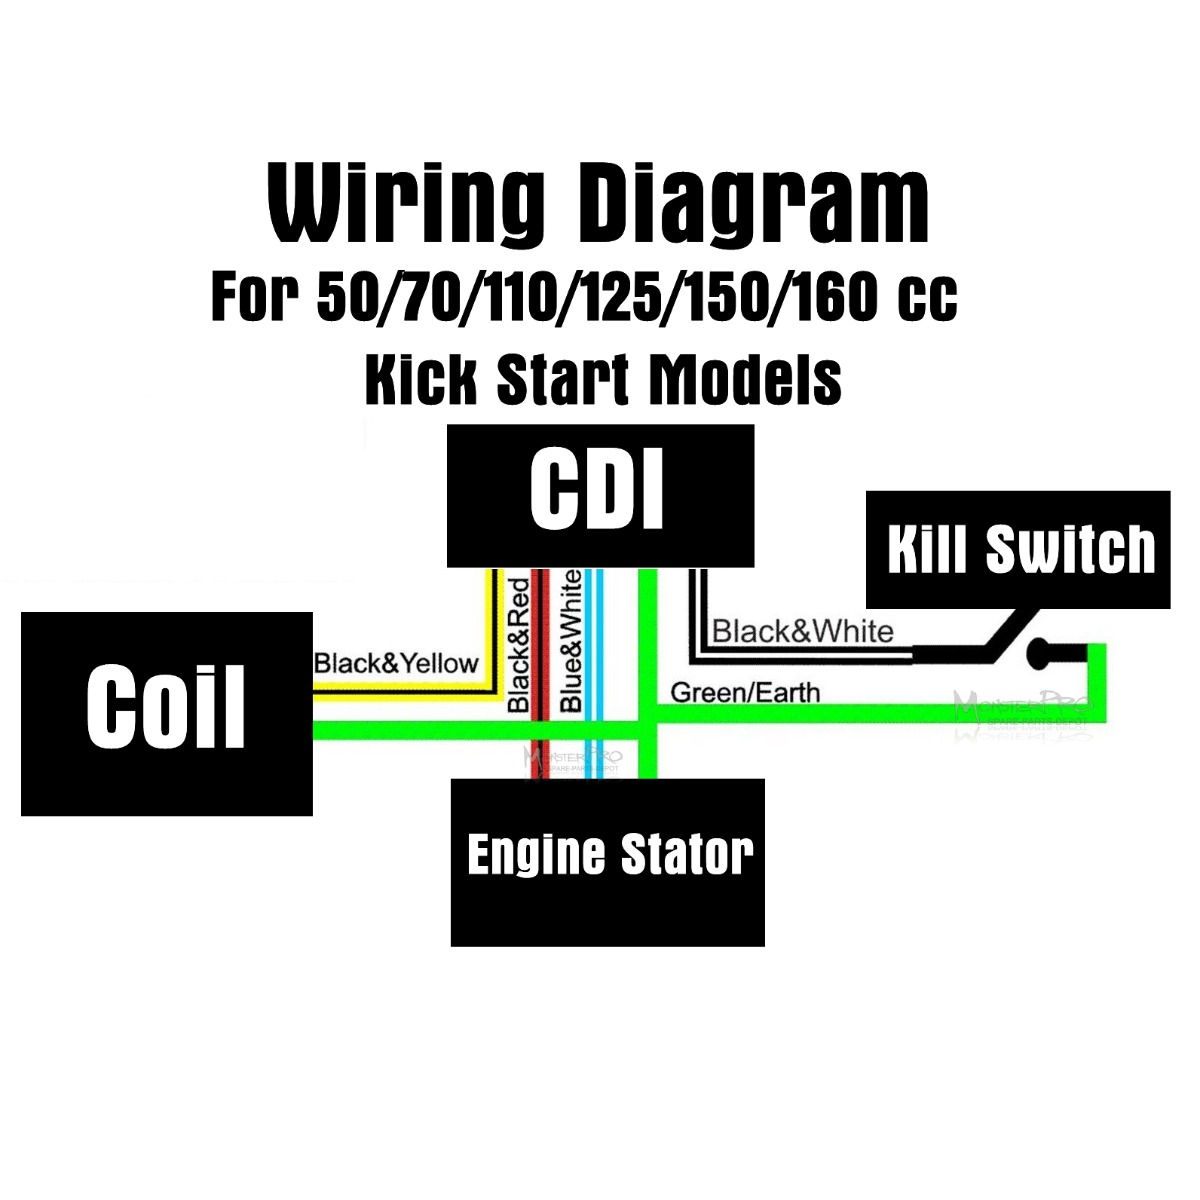 Xingyue Wiring Diagram besides 1989 GSXR1100 Wiring Diagram furthermore 345678 2007 Sunl 110cc Atv Wiring Nightmare together with 250cc Lifan Engine Wiring Diagram additionally Voltage Regulator Rectifier Euro Models Cagiva Elefant Laverda Atlas Ghost Ie Ducati Monster Strada Darmah. on dc cdi wiring diagram